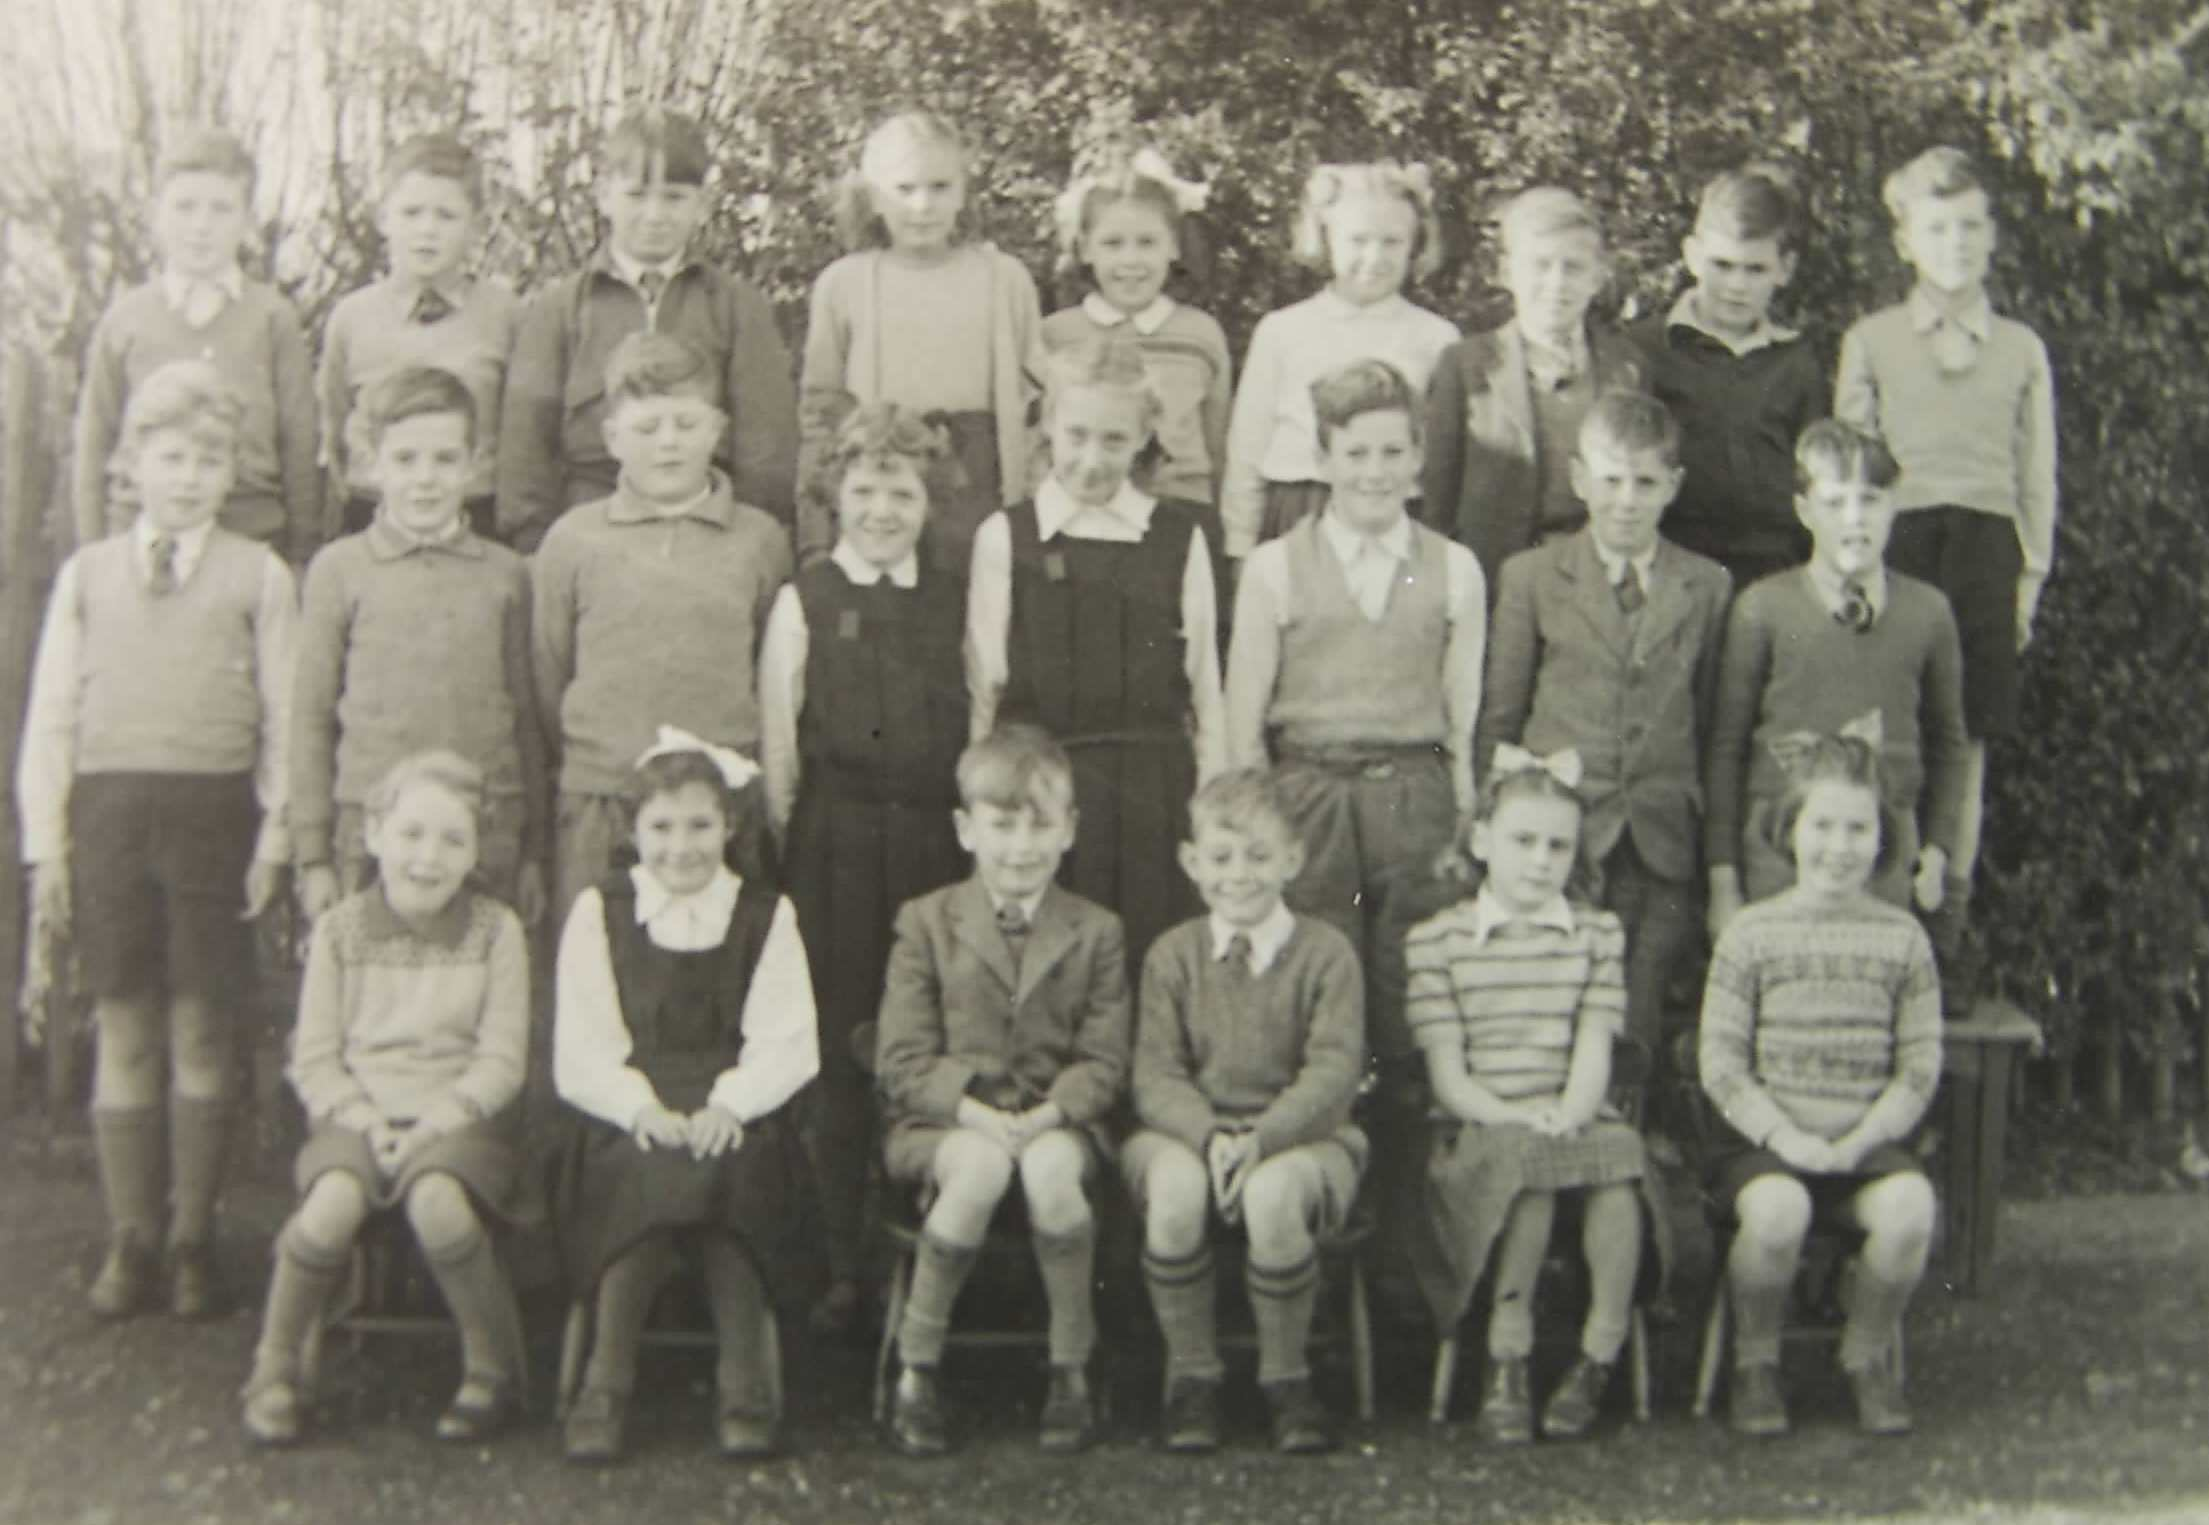 Pupils at Corton School possibly 1950s